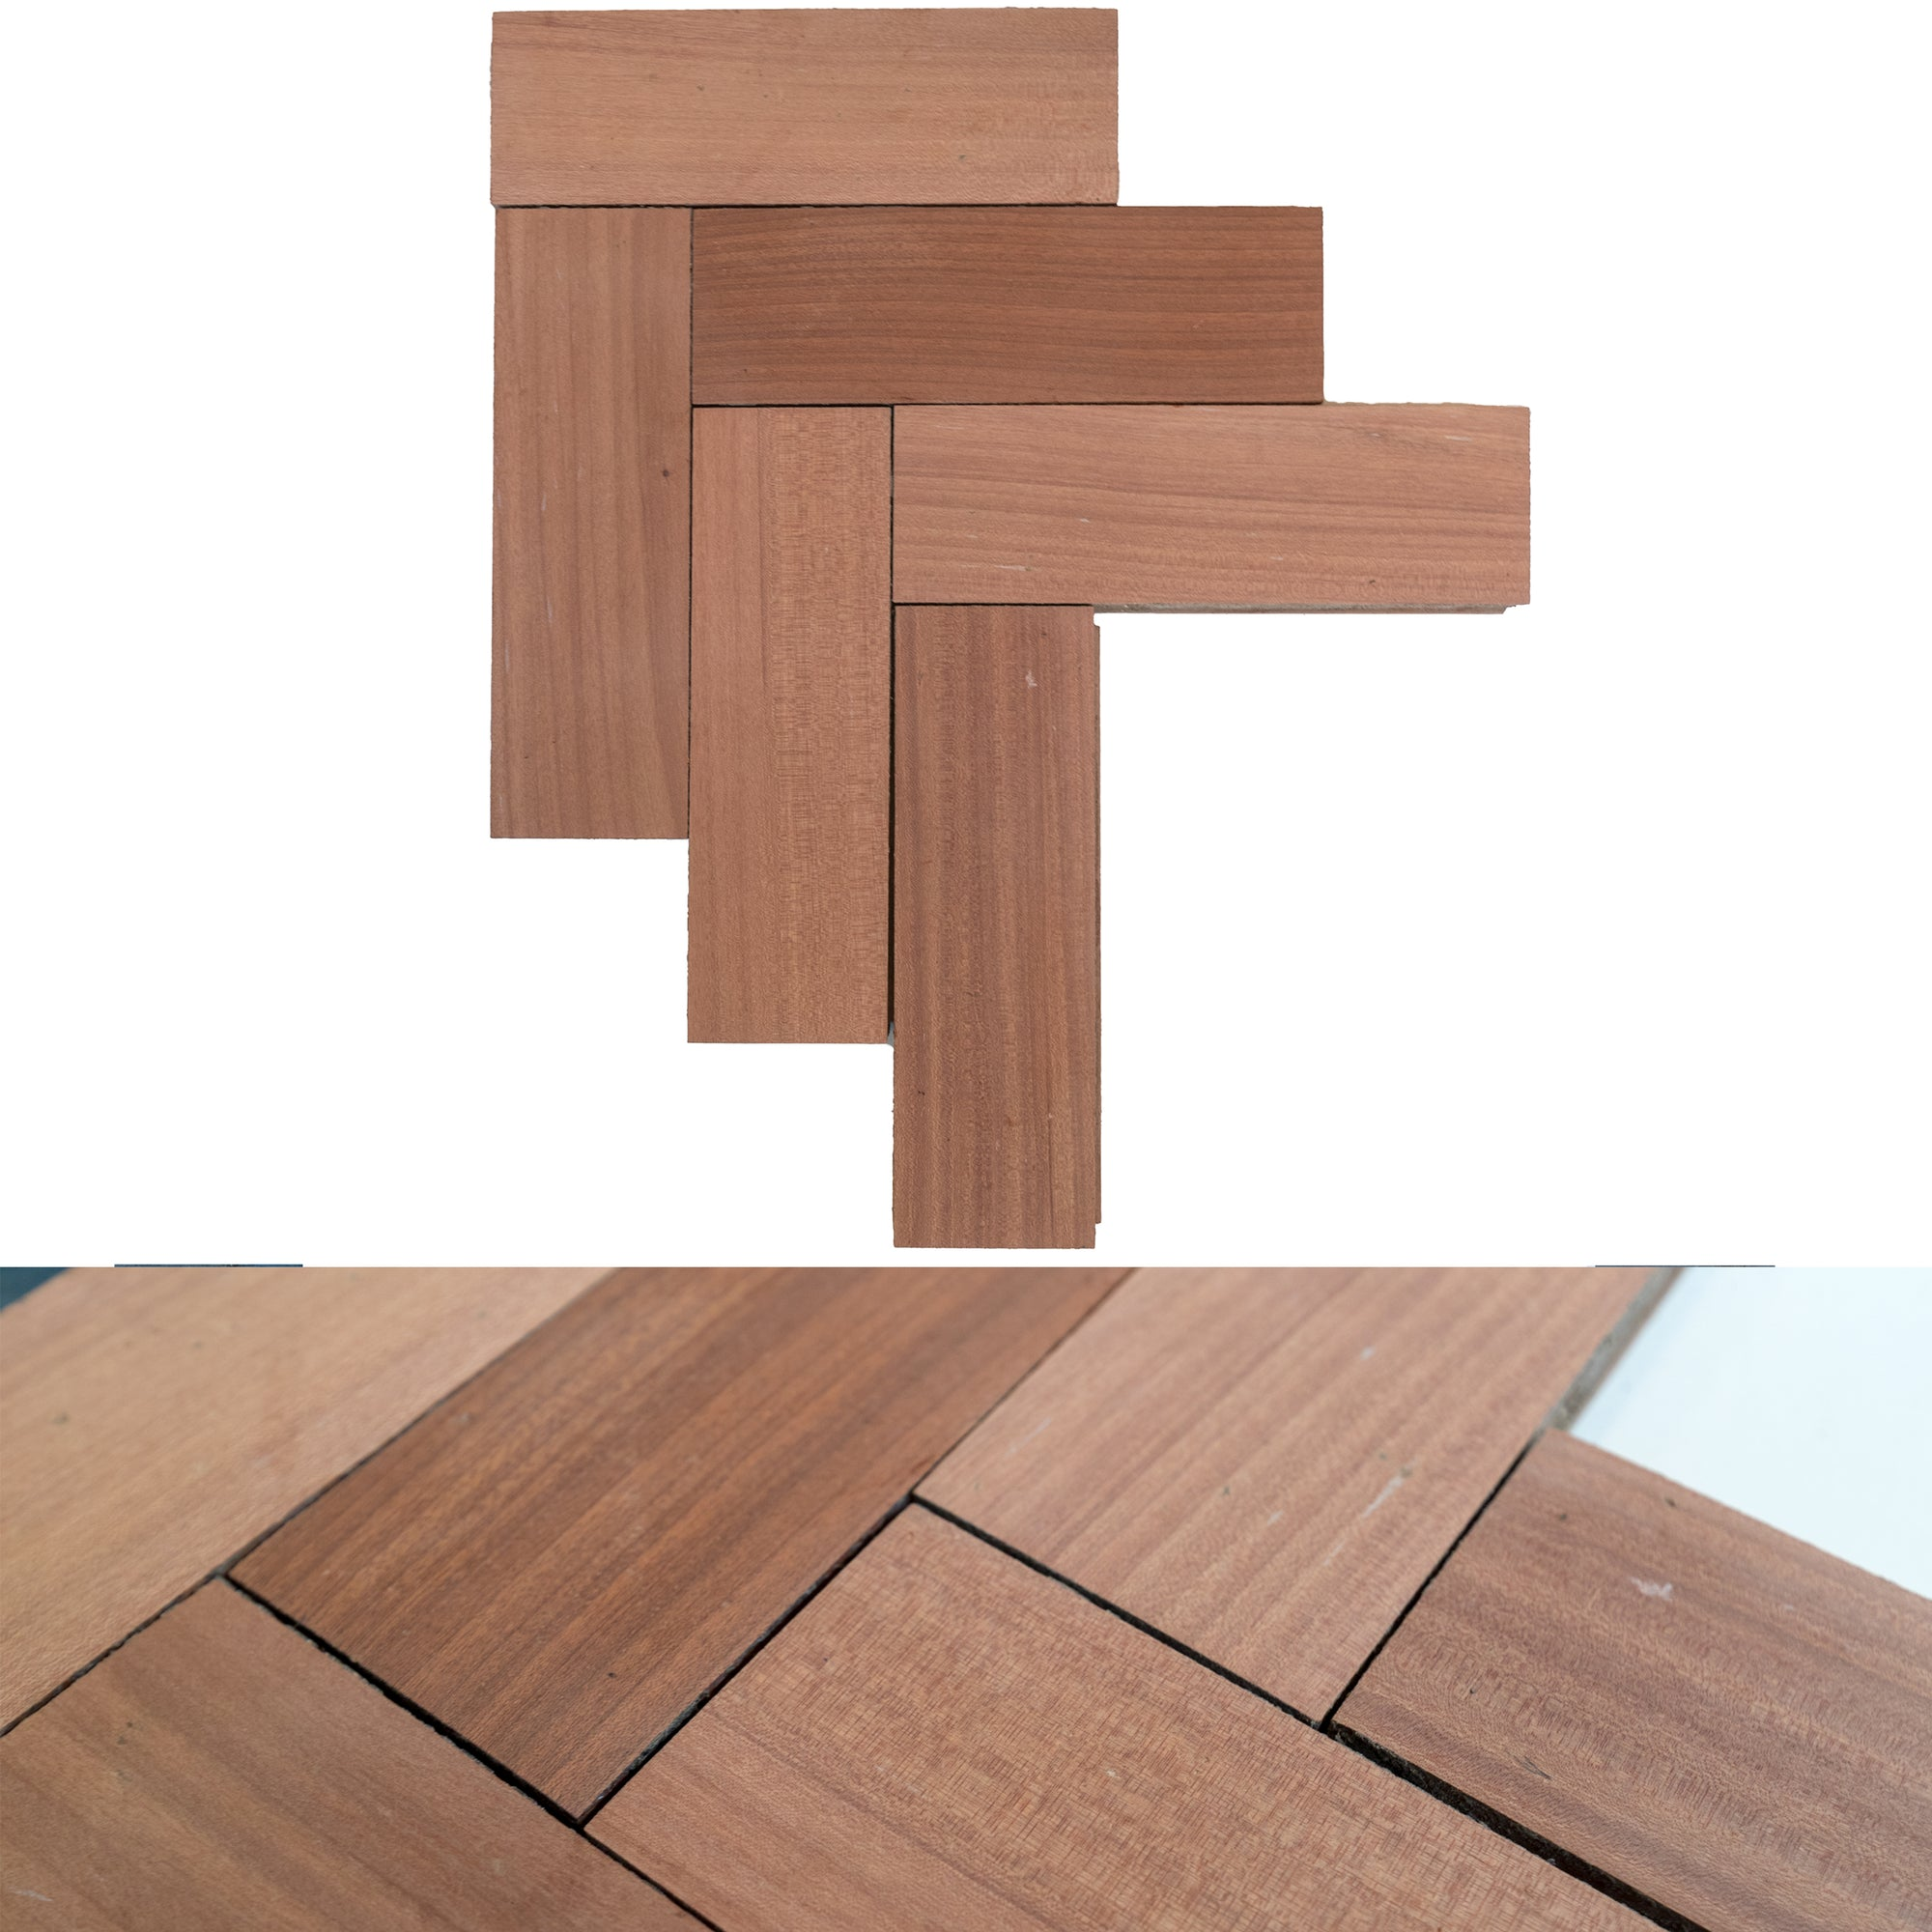 Reclaimed Sapele Parquet Flooring 180m² Available